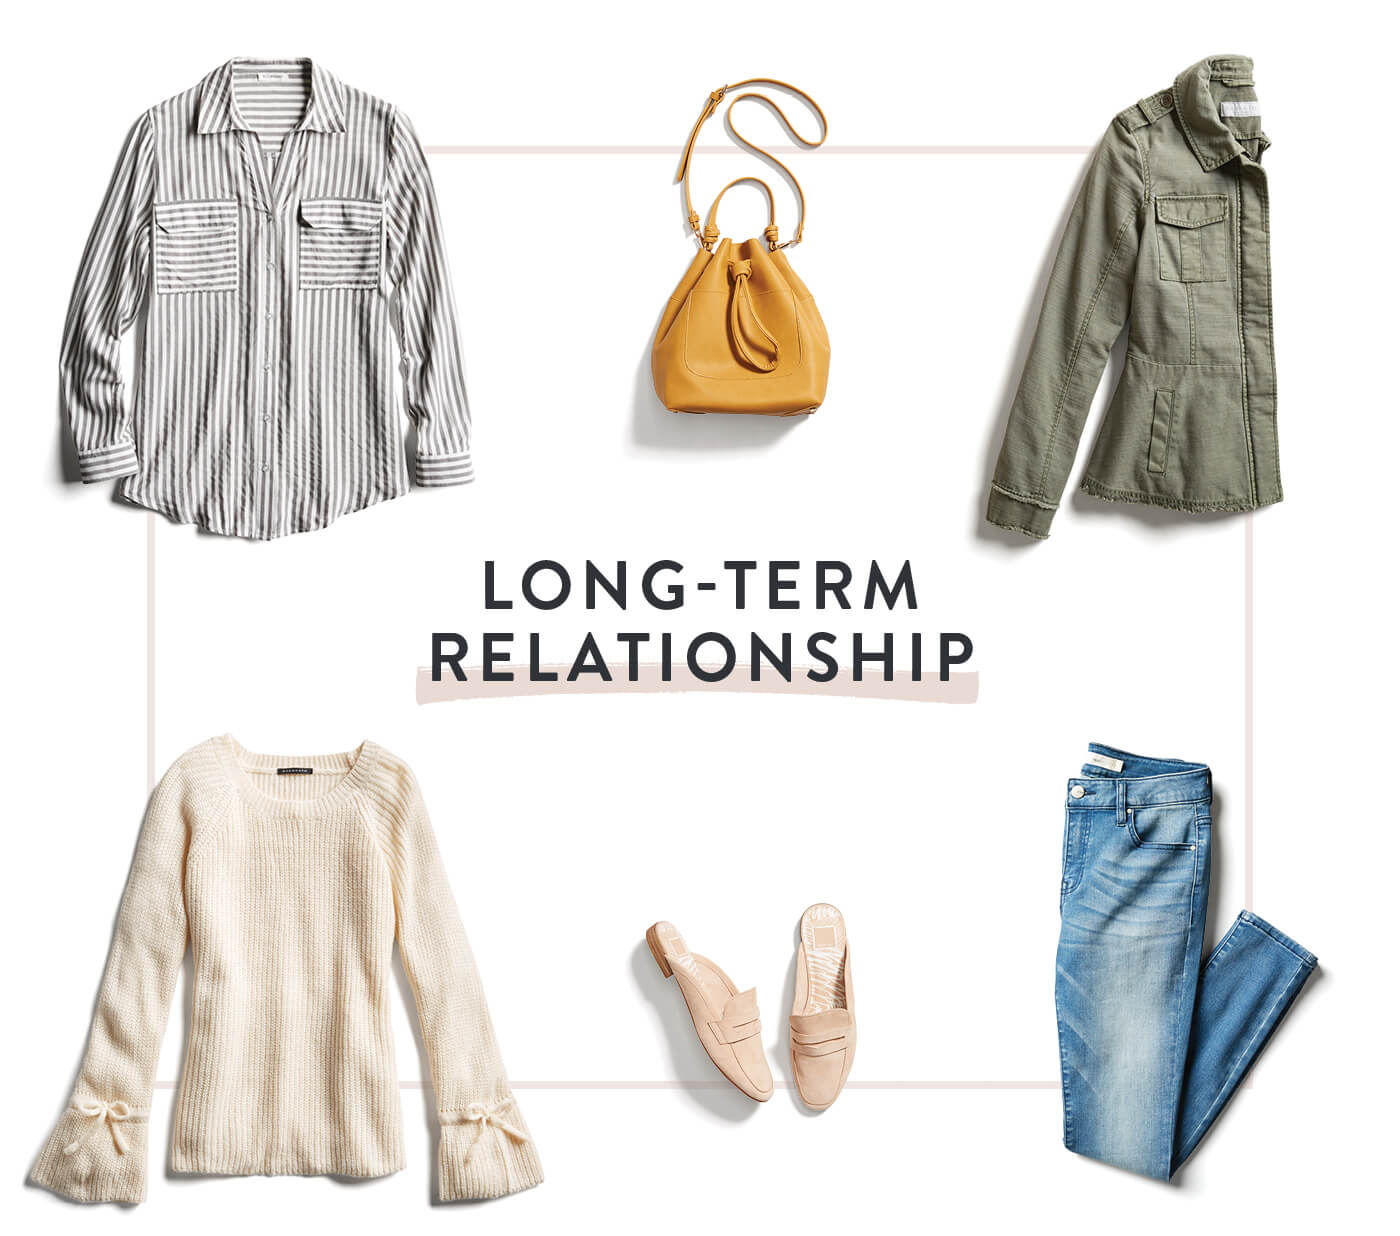 d1b611108daa WATCH: How To Pick the Perfect Date Outfit | Stitch Fix Style